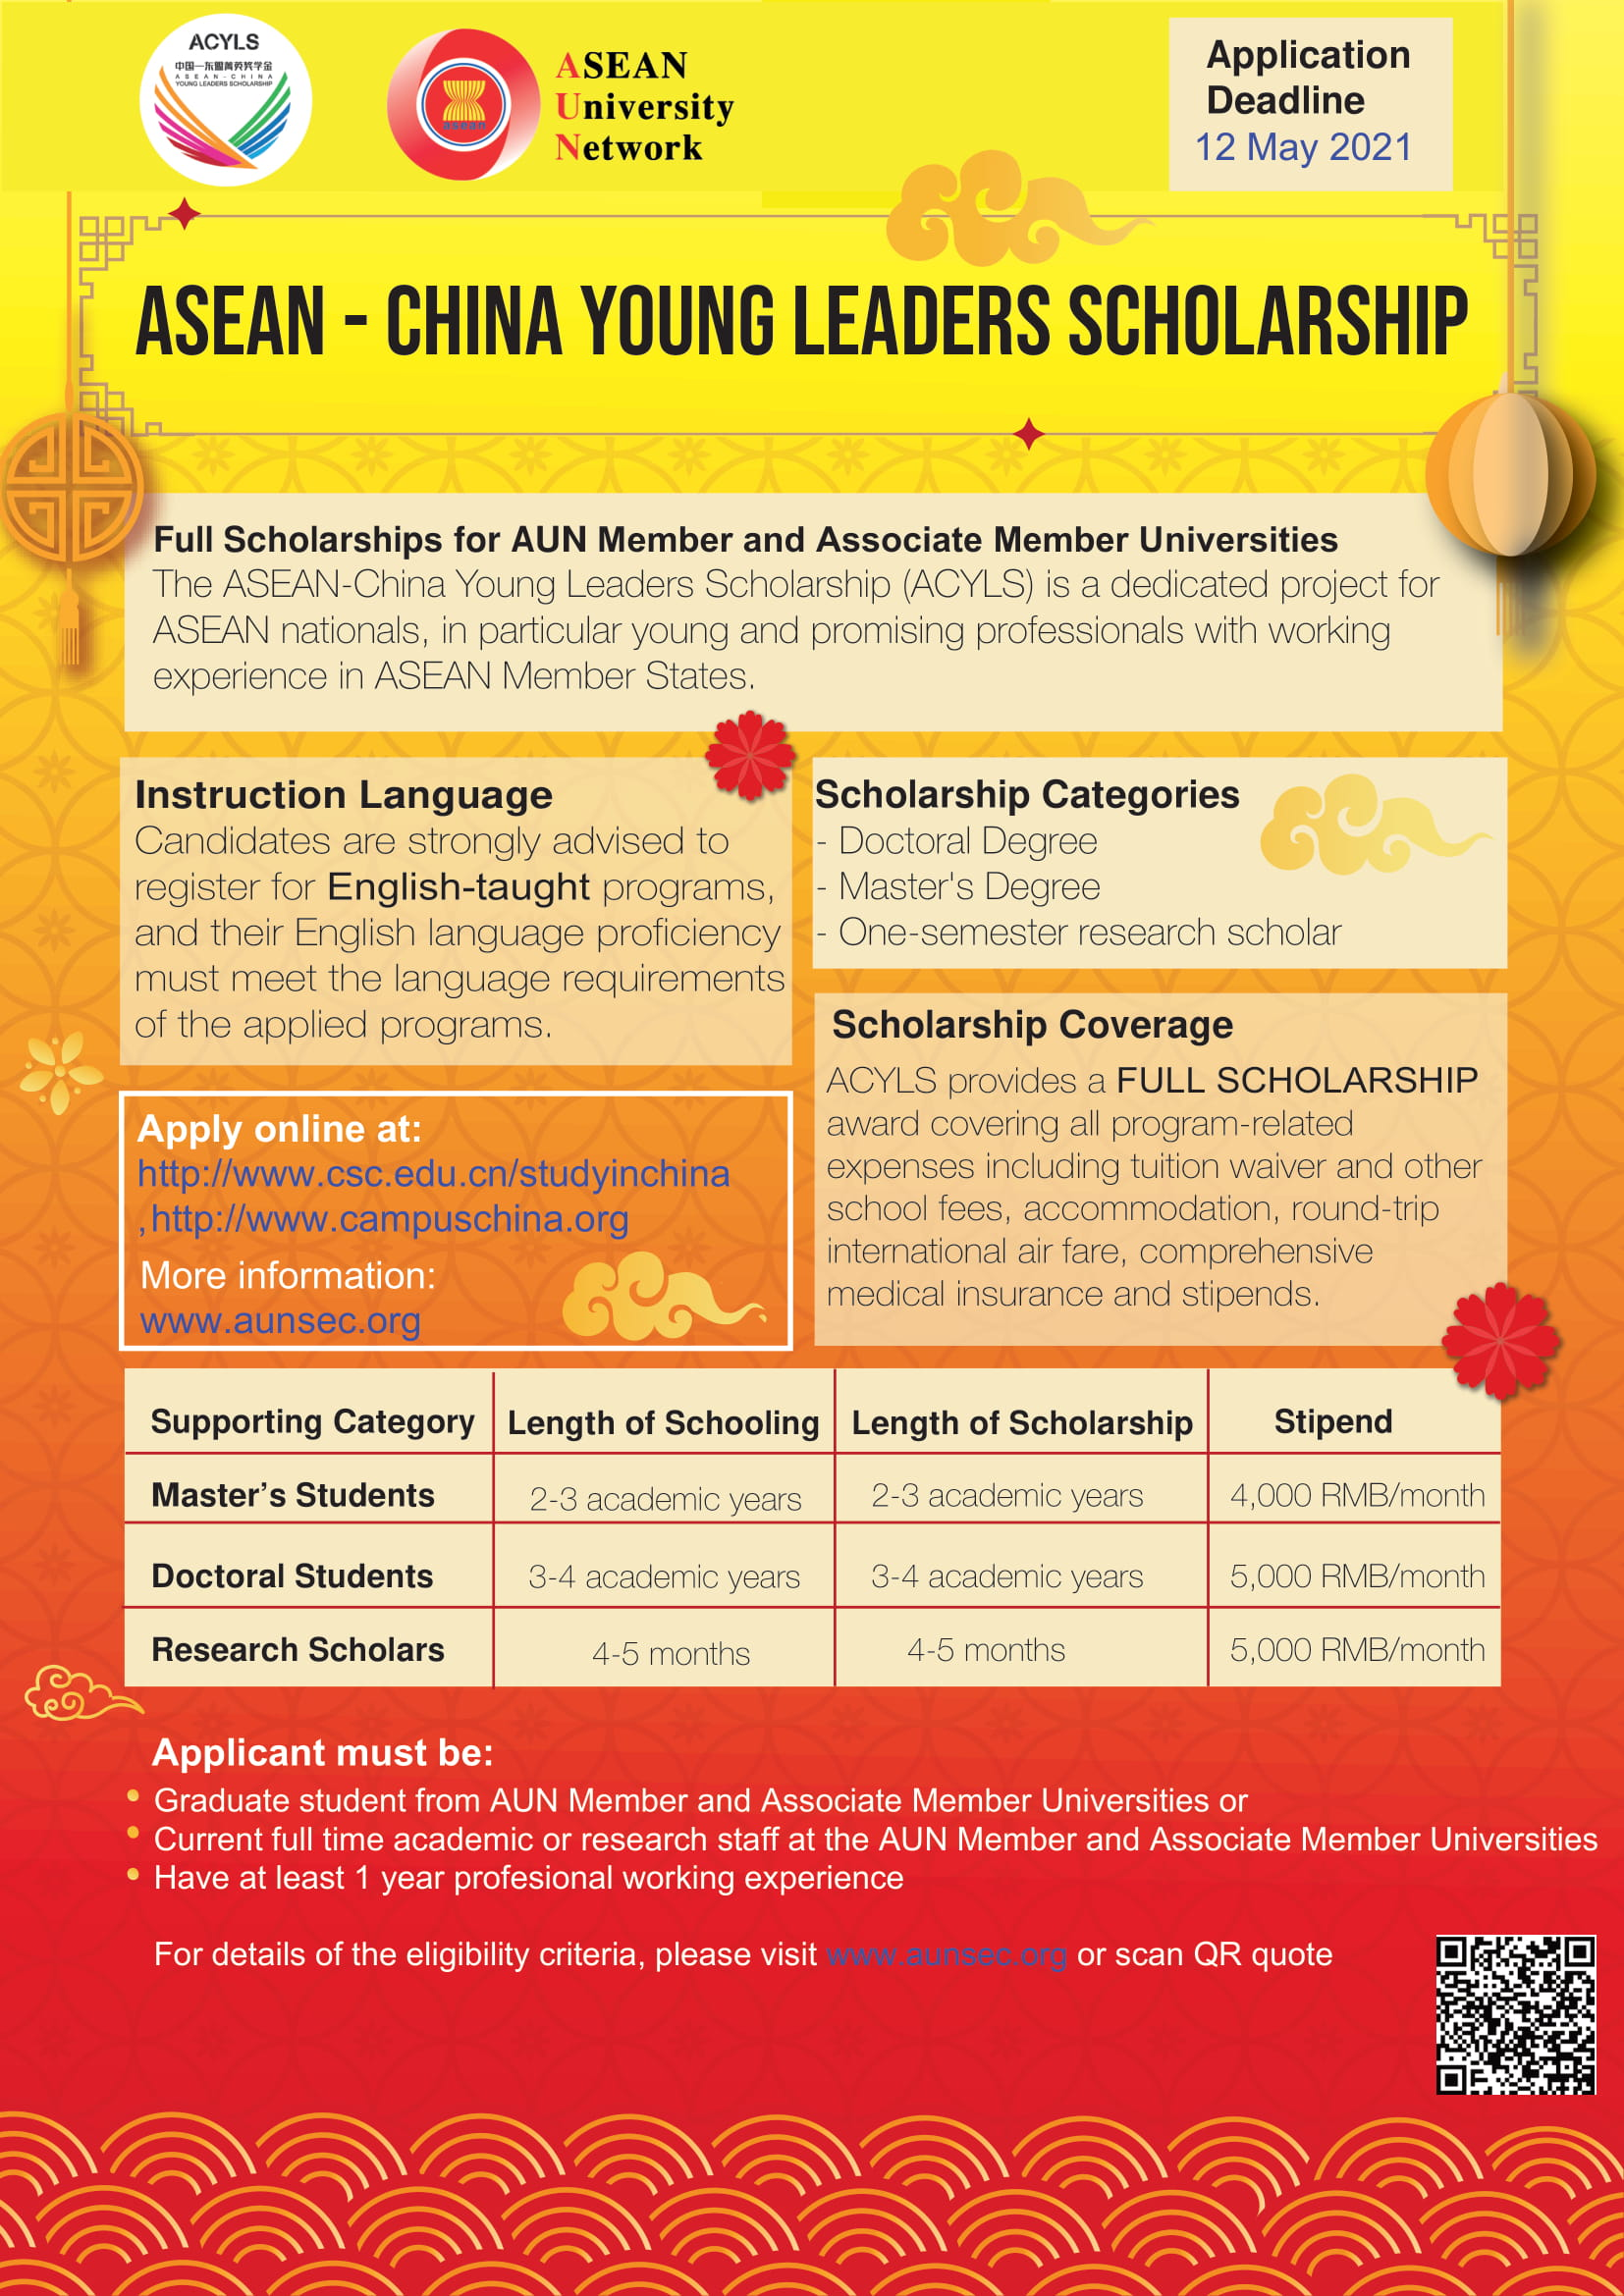 [Call for Applications] ASEAN-China Young Leaders Scholarship 2021